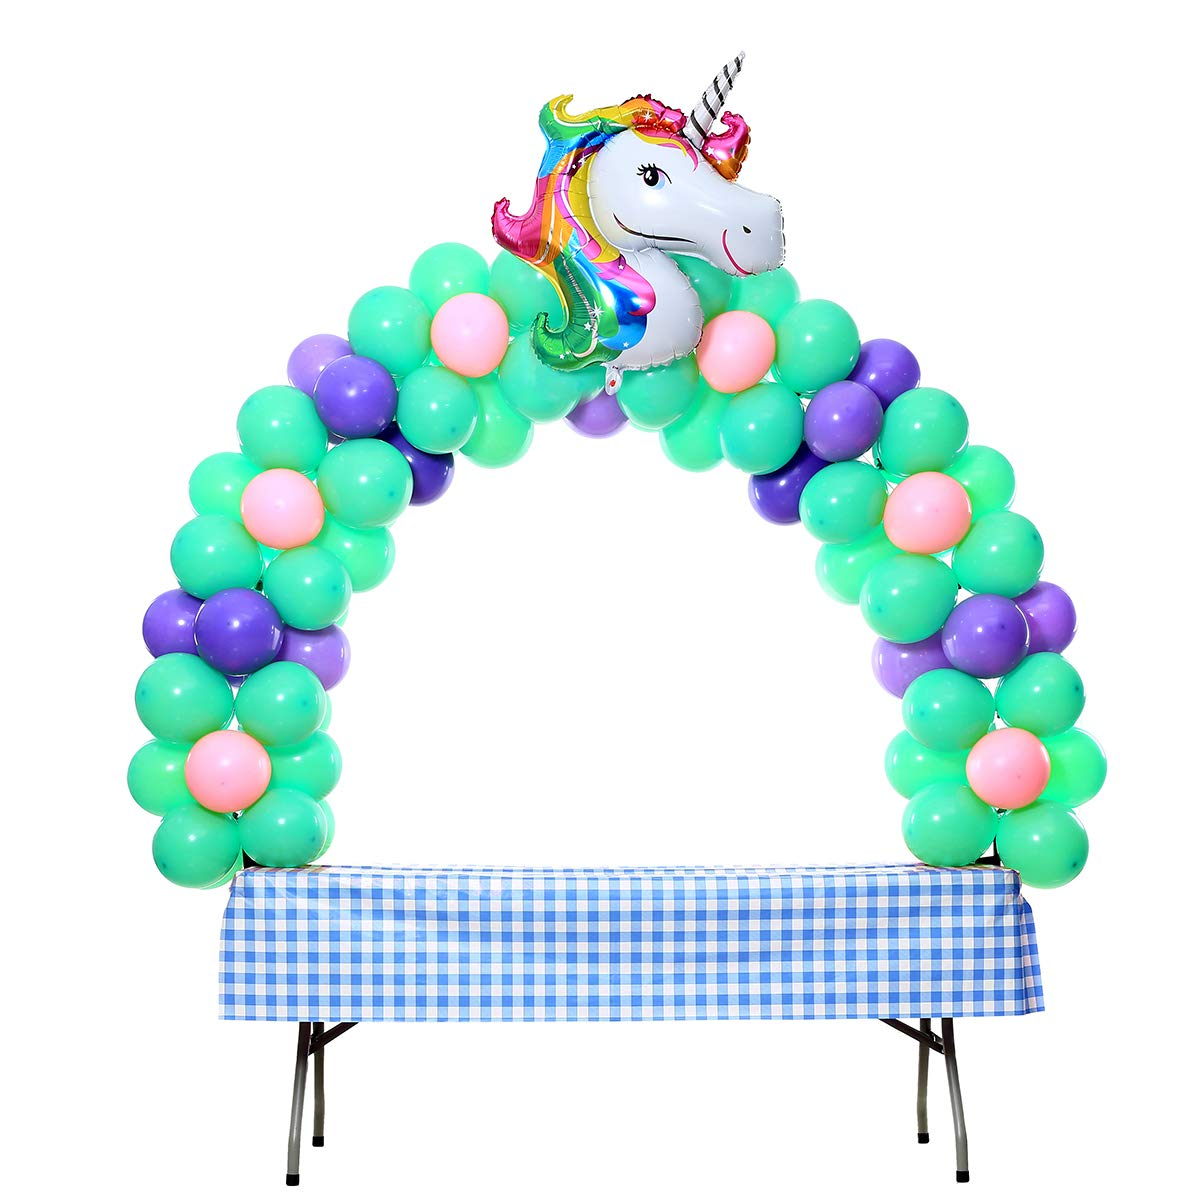 Balloon Arch Kit Adjustable for Different Table Sizes Birthday, Wedding, Christmas, and Graduation Party